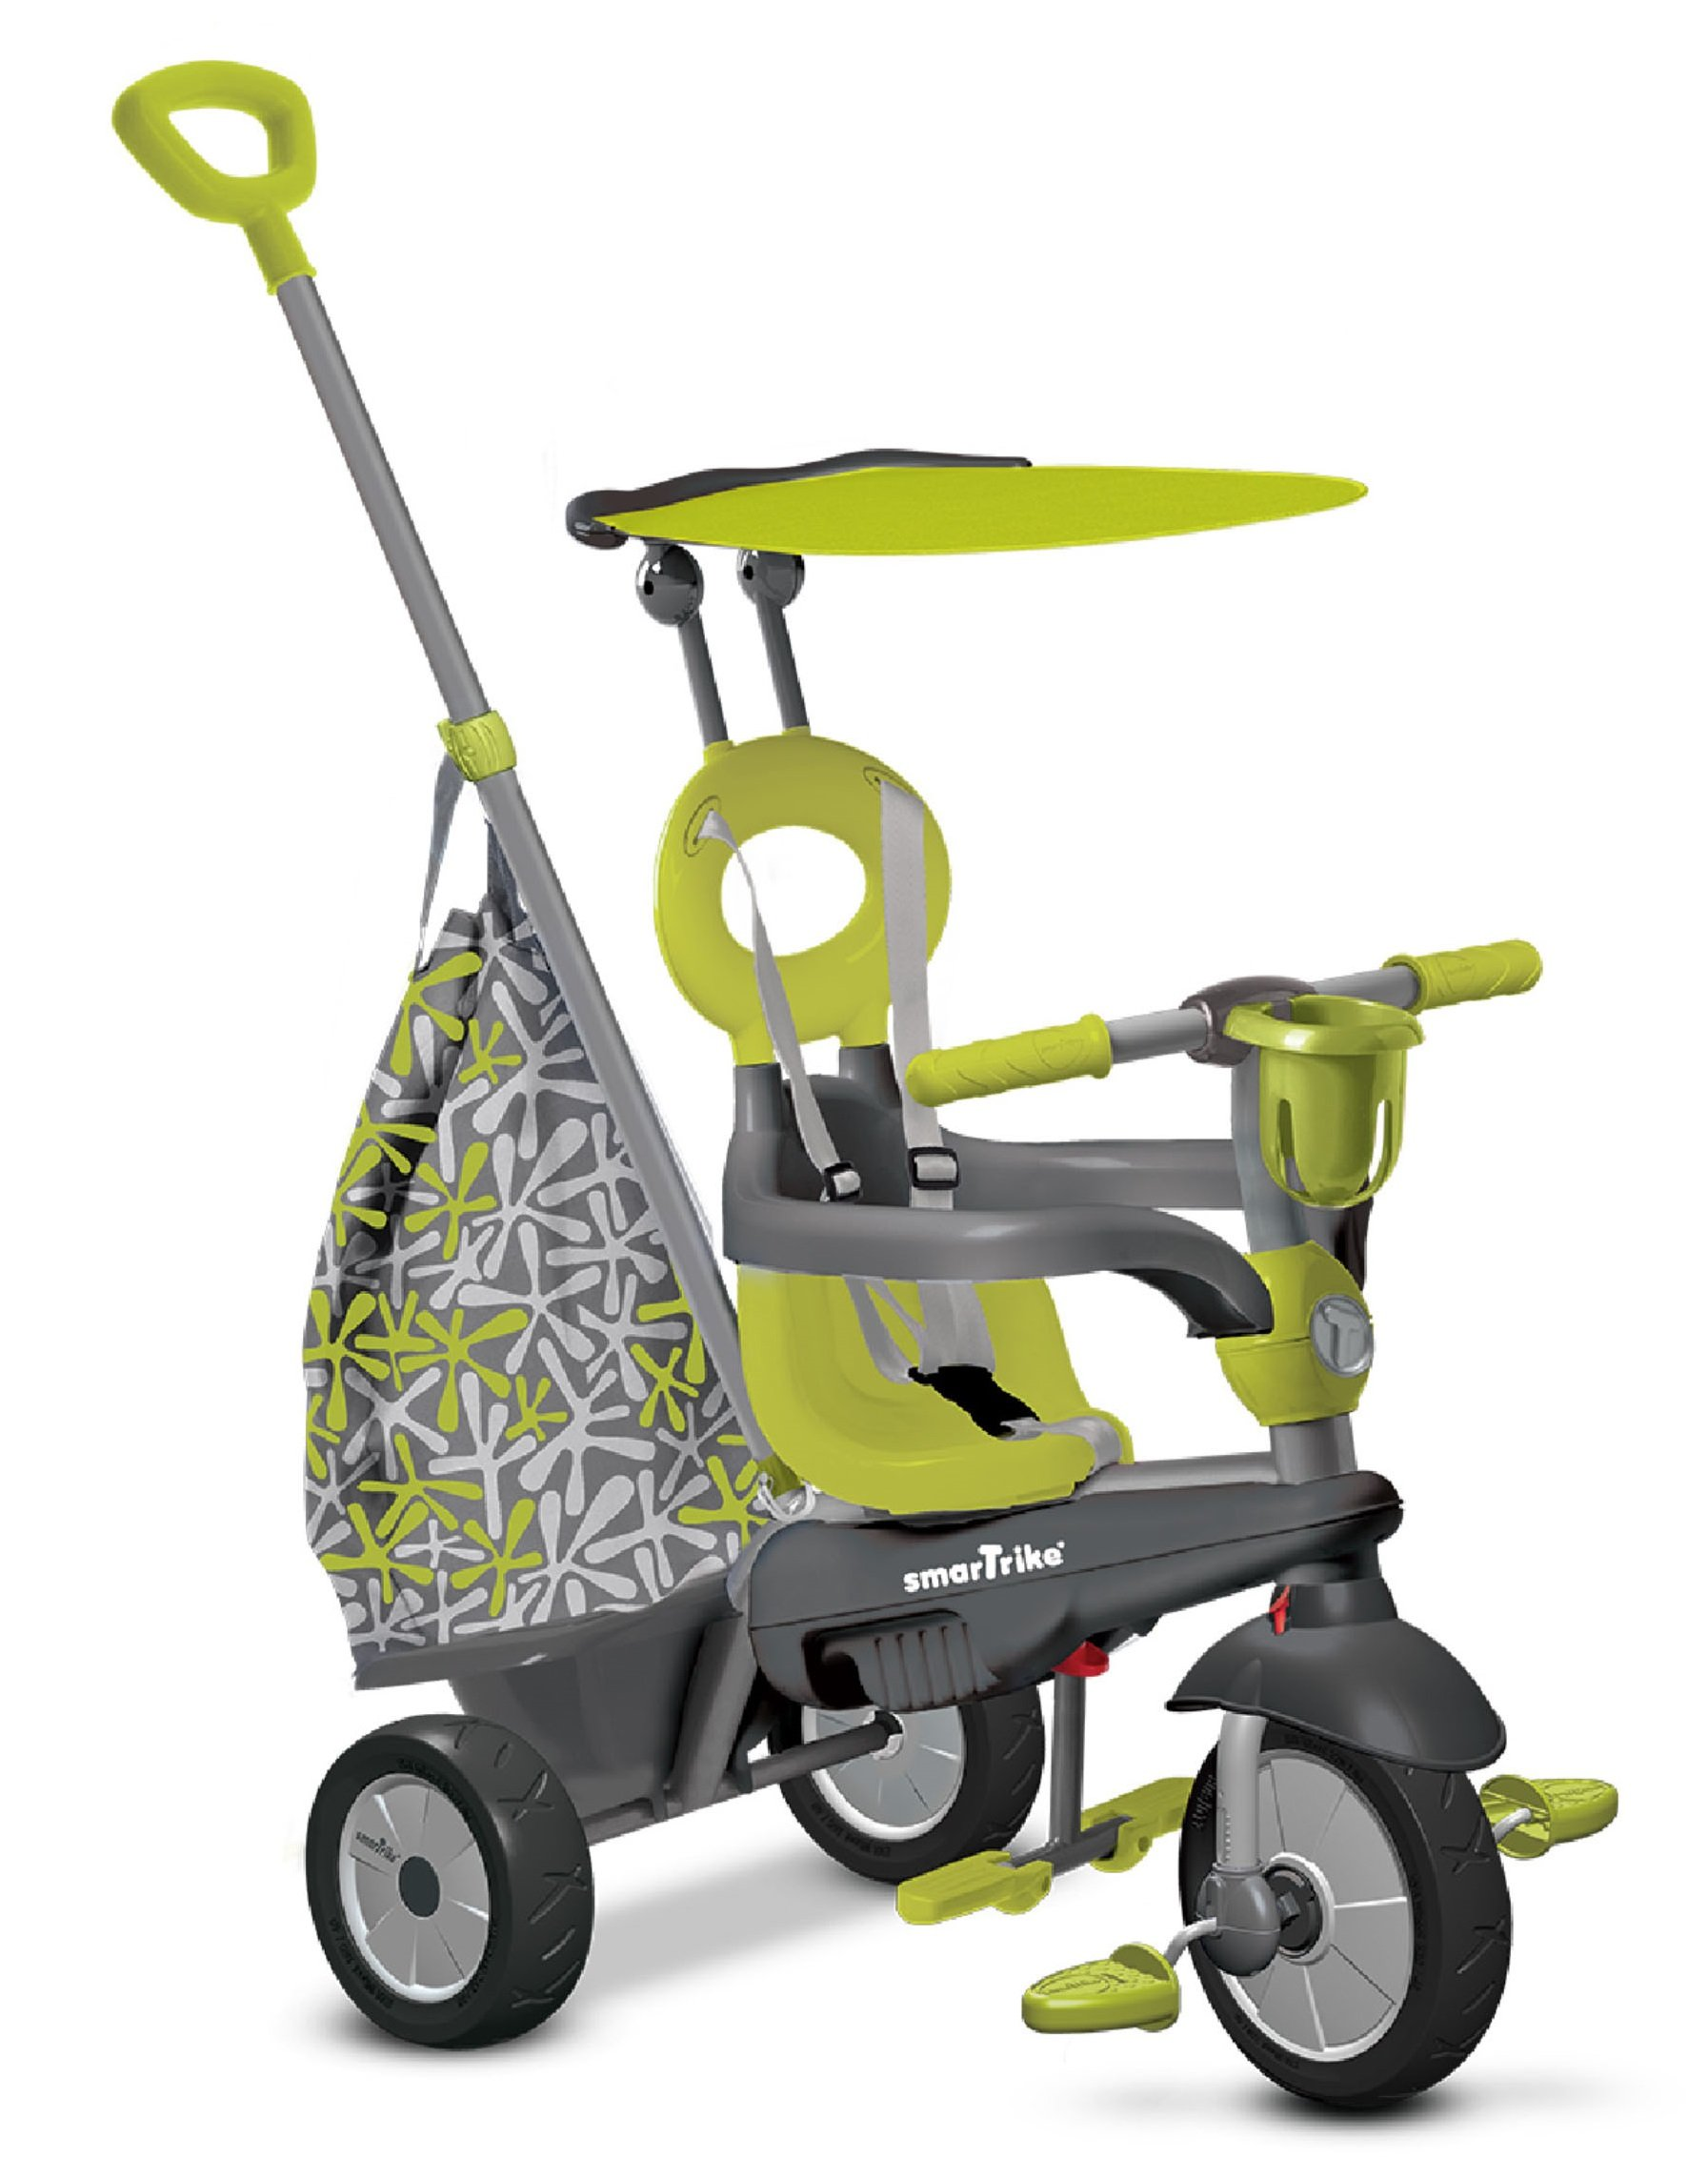 smarTrike Groove Baby Tricycle, Green/Gray